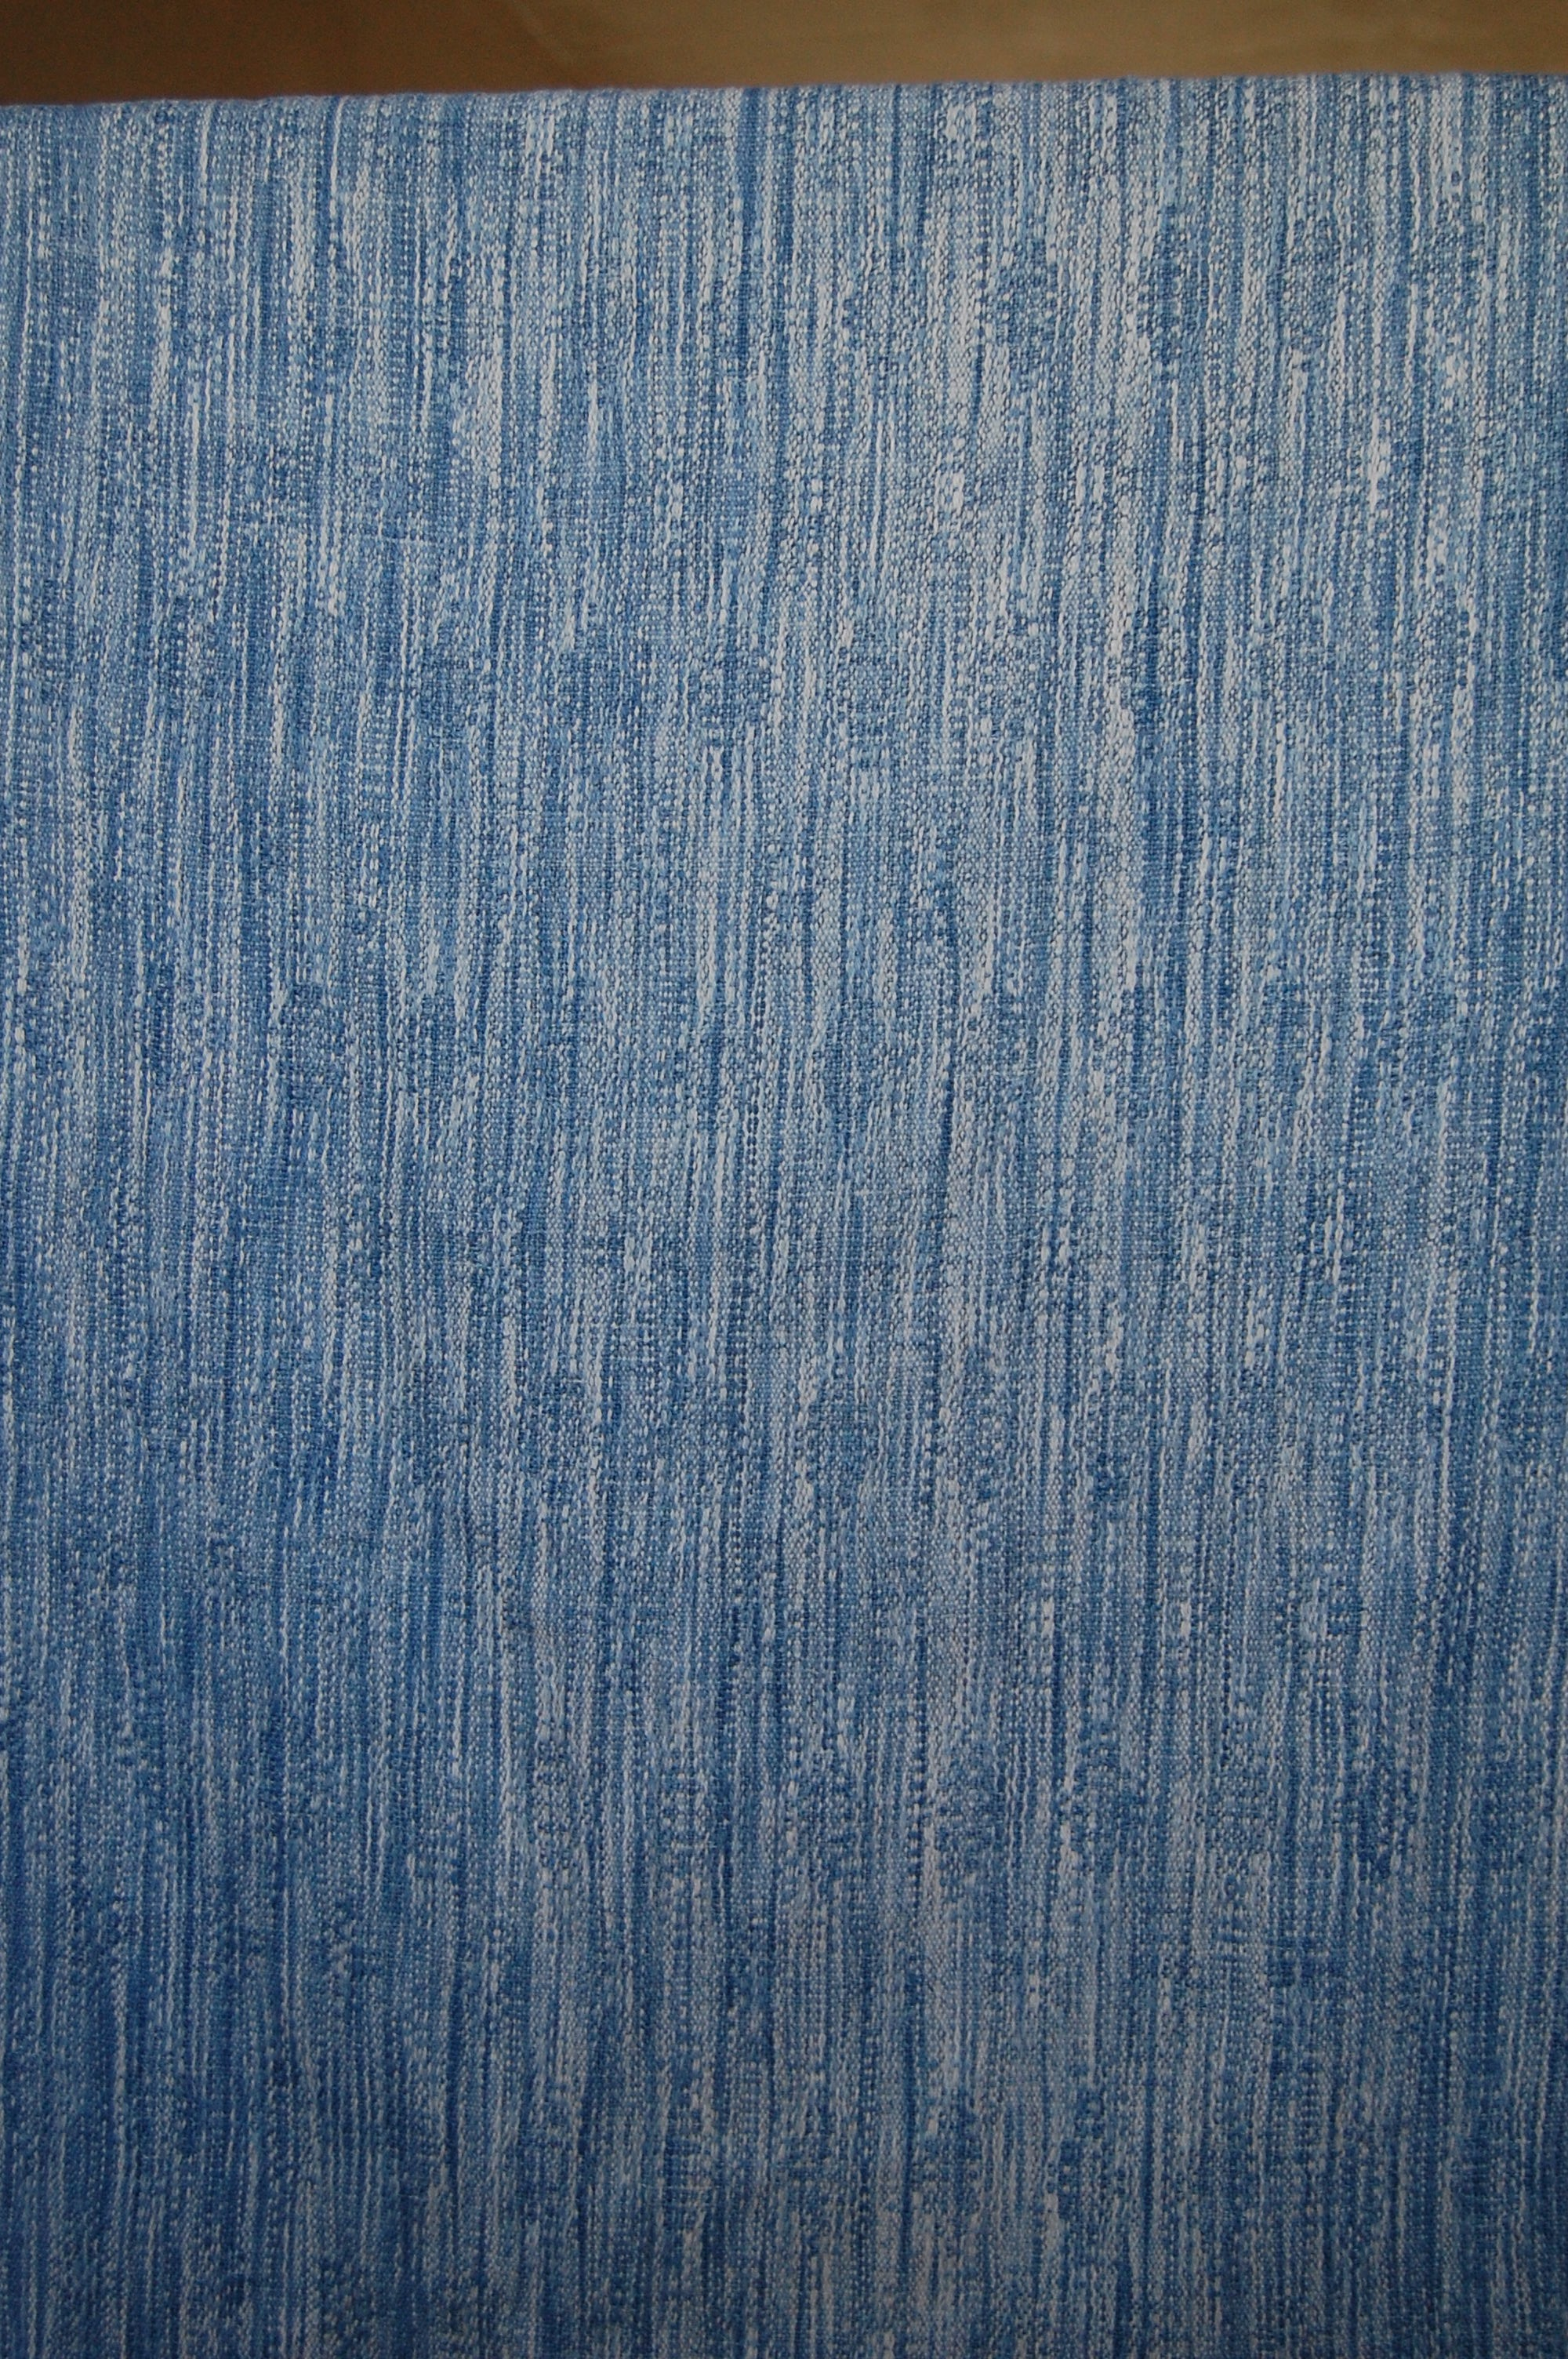 Indigo v.2 Blueprint with indigo-dyed silk/seacell weft 5.0 meters - shown here finished